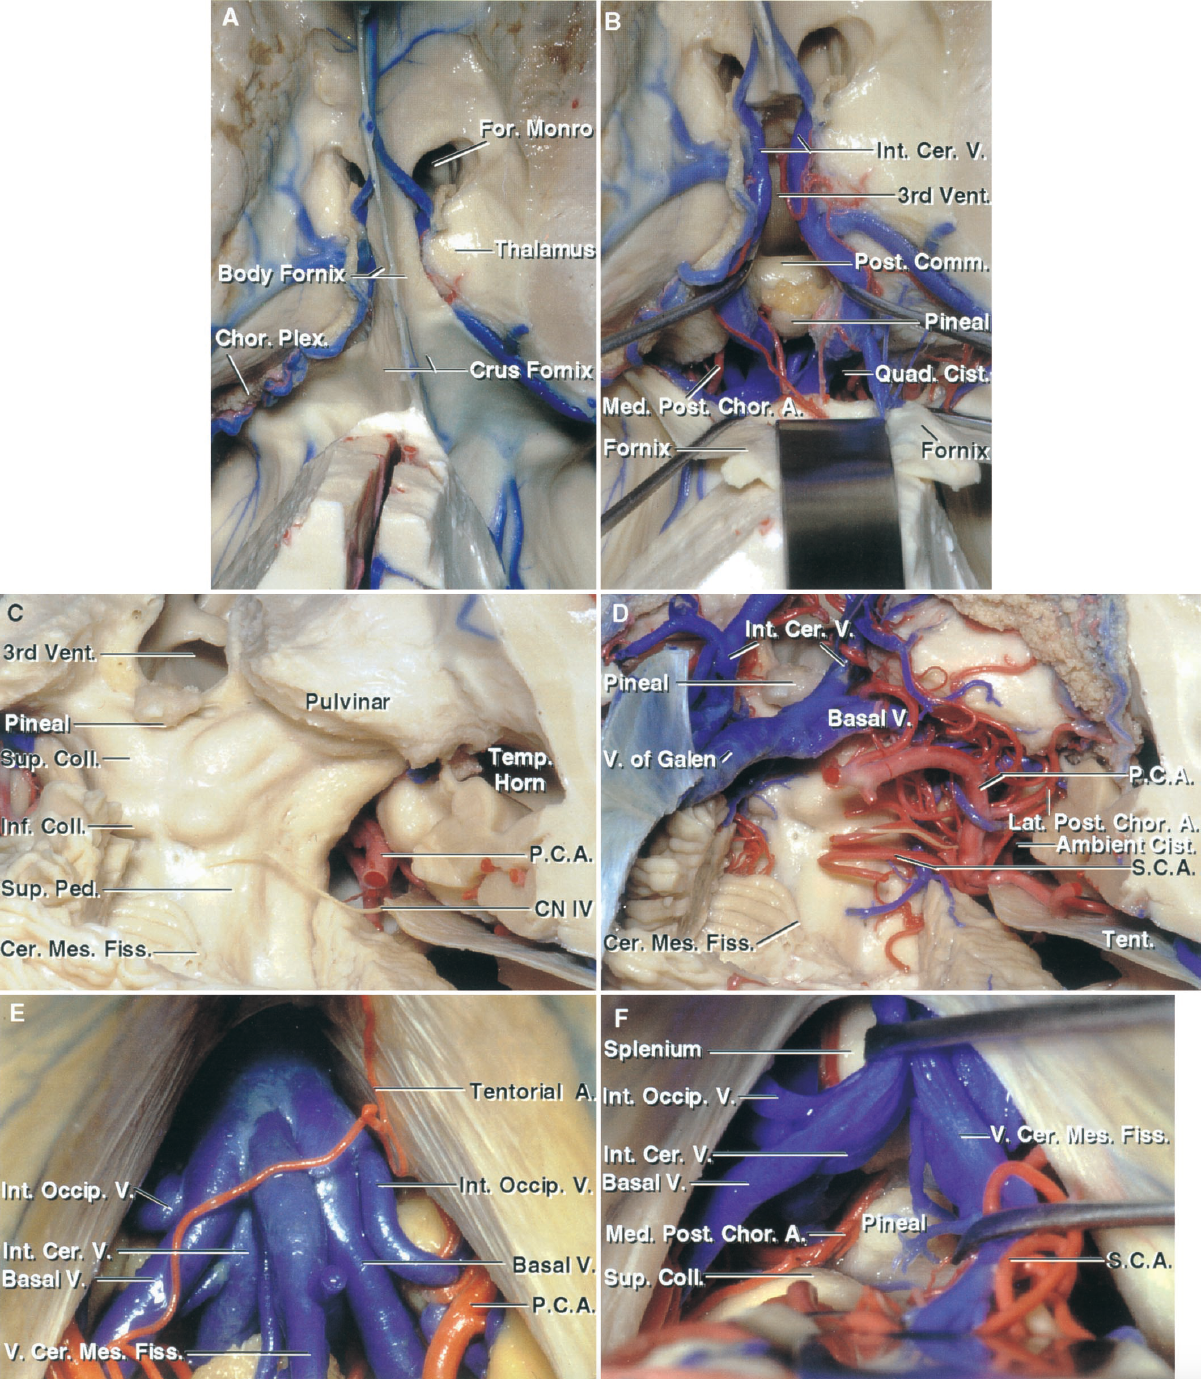 FIGURE 5.10. A–F. Comparison of the midline and paramedian infratentorial supracerebellar and the occipital transtentorial approaches to the quadrigeminal cistern and the posterior third ventricle. A–D, views of the third ventricle and quadrigeminal cistern. A, third ventricle from above. The body of the fornix separates the body of the lateral ventricle from the roof of the third ventricle. The body of the fornix blends posteriorly into the crus of the fornix, which is situated above the posterior part of the third ventricle. The choroidal fissure, the site of attachment of the choroid plexus, is situated between the fornix and thalamus. B, the fornix was divided at the level of the columns, just behind the foramen of Monro, and reflected posteriorly to expose the posterior commissure, pineal, and adjacent part of the quadrigeminal cistern. C, the quadrigeminal cistern is located behind the pineal and the colliculi and between the pulvinars. It extends into the cerebellomesencephalic fissure. The trochlear nerves arise below the inferior colliculi. D, view similar to C, except that the vessels have been preserved. The internal cerebral and basal veins join the vein of Galen behind the pineal. The PCA and SCA exit the ambient cistern to enter the lateral part of the quadrigeminal cistern. Both the infratentorial supracerebellar and occipital transtentorial approaches are directed to this area. E and F, midline infratentorial supracerebellar approach. E, the venous complex emptying into the vein of Galen blocks access to the pineal region. This complex includes the internal occipital, basal and internal cerebral veins, and the vein of the cerebellomesencephalic fissure. A tentorial branch of the SCA crosses the exposure. F, the vein of Galen has been retracted to expose the splenium. The vein of the cerebellomesencephalic fissure has been retracted to expose the pineal. A., artery; Bridg., bridging; Cer., cerebral; Cer. Mes., cerebellomesencephalic; Chor., choroidal; Cist., cistern; CN, cranial nerve; Coll., colliculus; Comm., communicating; Fiss., fissure; For., foramen; Inf., inferior; Int., internal; Lat., lateral; Med., medial; Occip., occipital; P.C.A., posterior cerebral artery; Ped., peduncle; Plex., plexus; Post., posterior; Quad., quadrigeminal; Sag., sagittal; S.C.A., superior cerebellar artery; Str., straight; Sup., superior; Temp., temporal; Tent., tentorial; Trans., transverse; V., vein; Ve., vermian; Vent., ventricle.